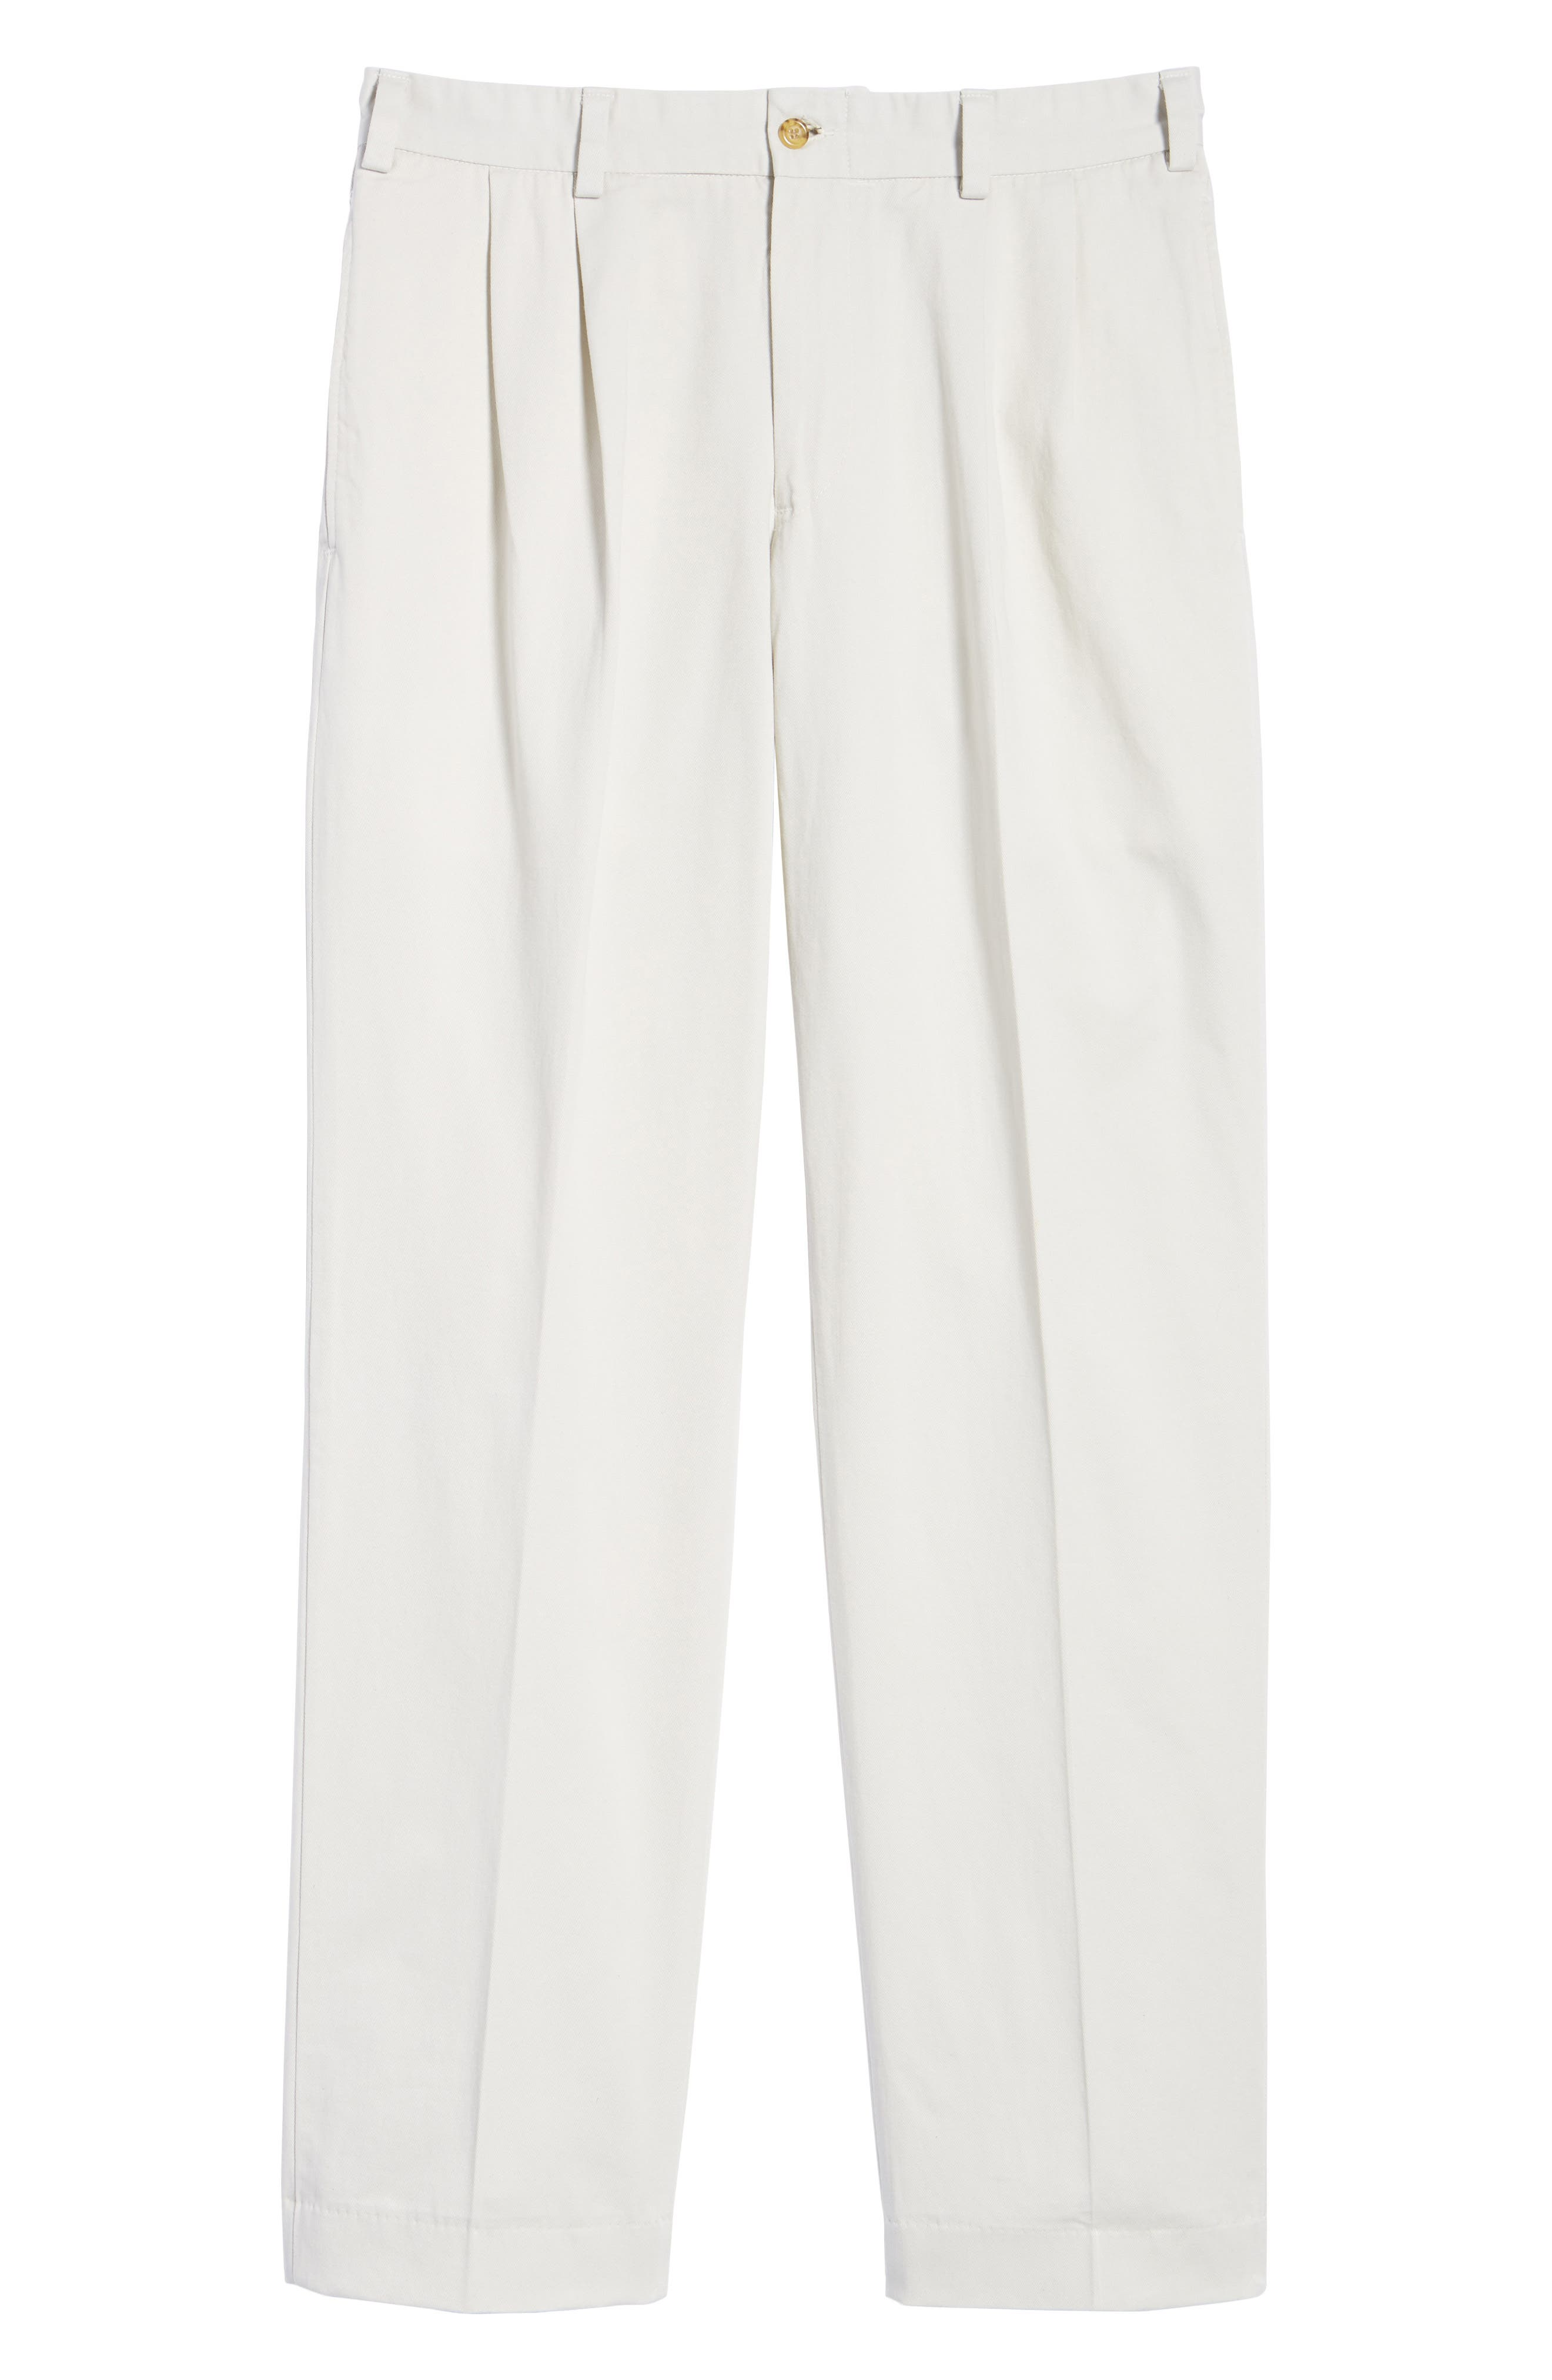 M2 Classic Fit Vintage Twill Pleated Pants,                             Alternate thumbnail 6, color,                             Stone